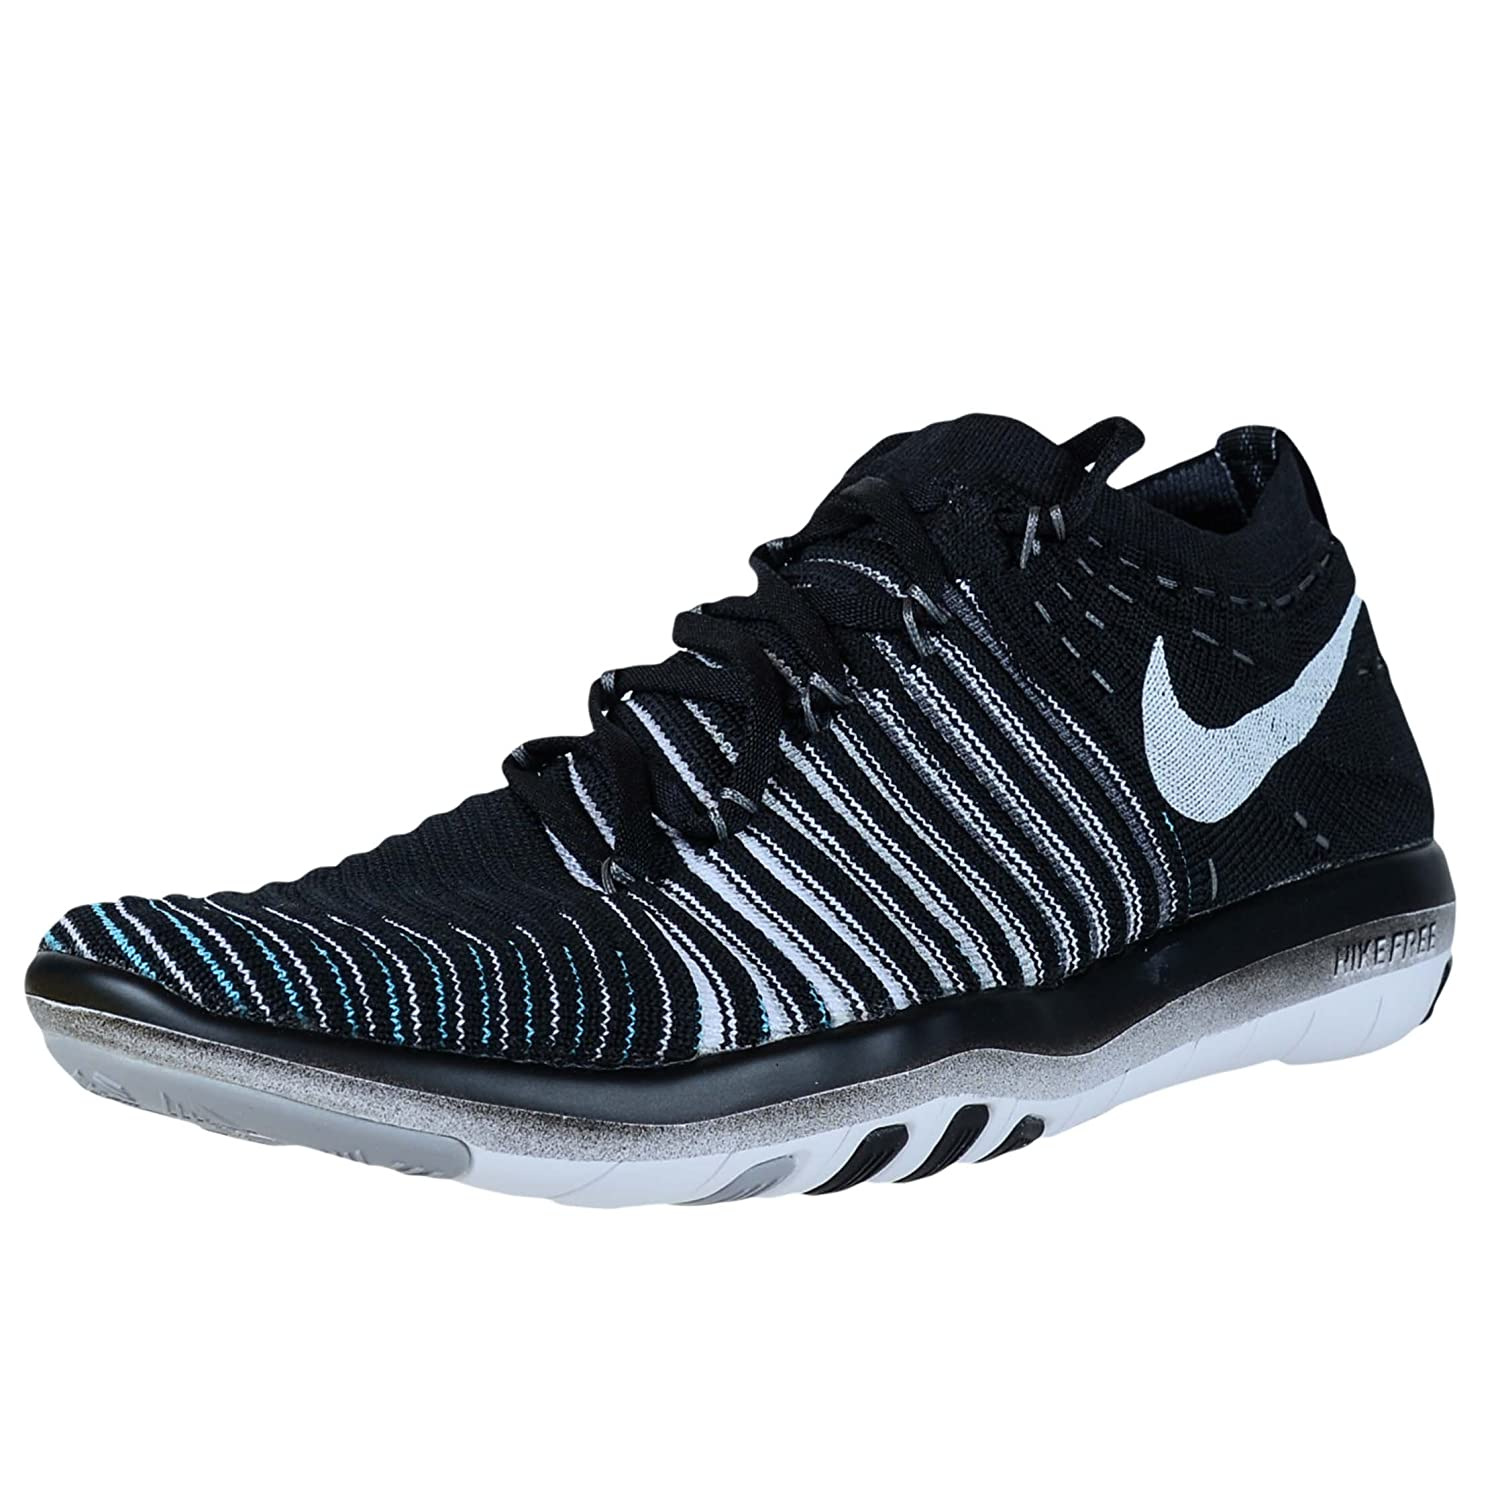 NIKE Womens Free Focus B014GN12WQ Flyknit Mesh Breathable Trainers B014GN12WQ Focus 10 B(M) US|Black/White-wolf Grey-dark Grey eef3f8